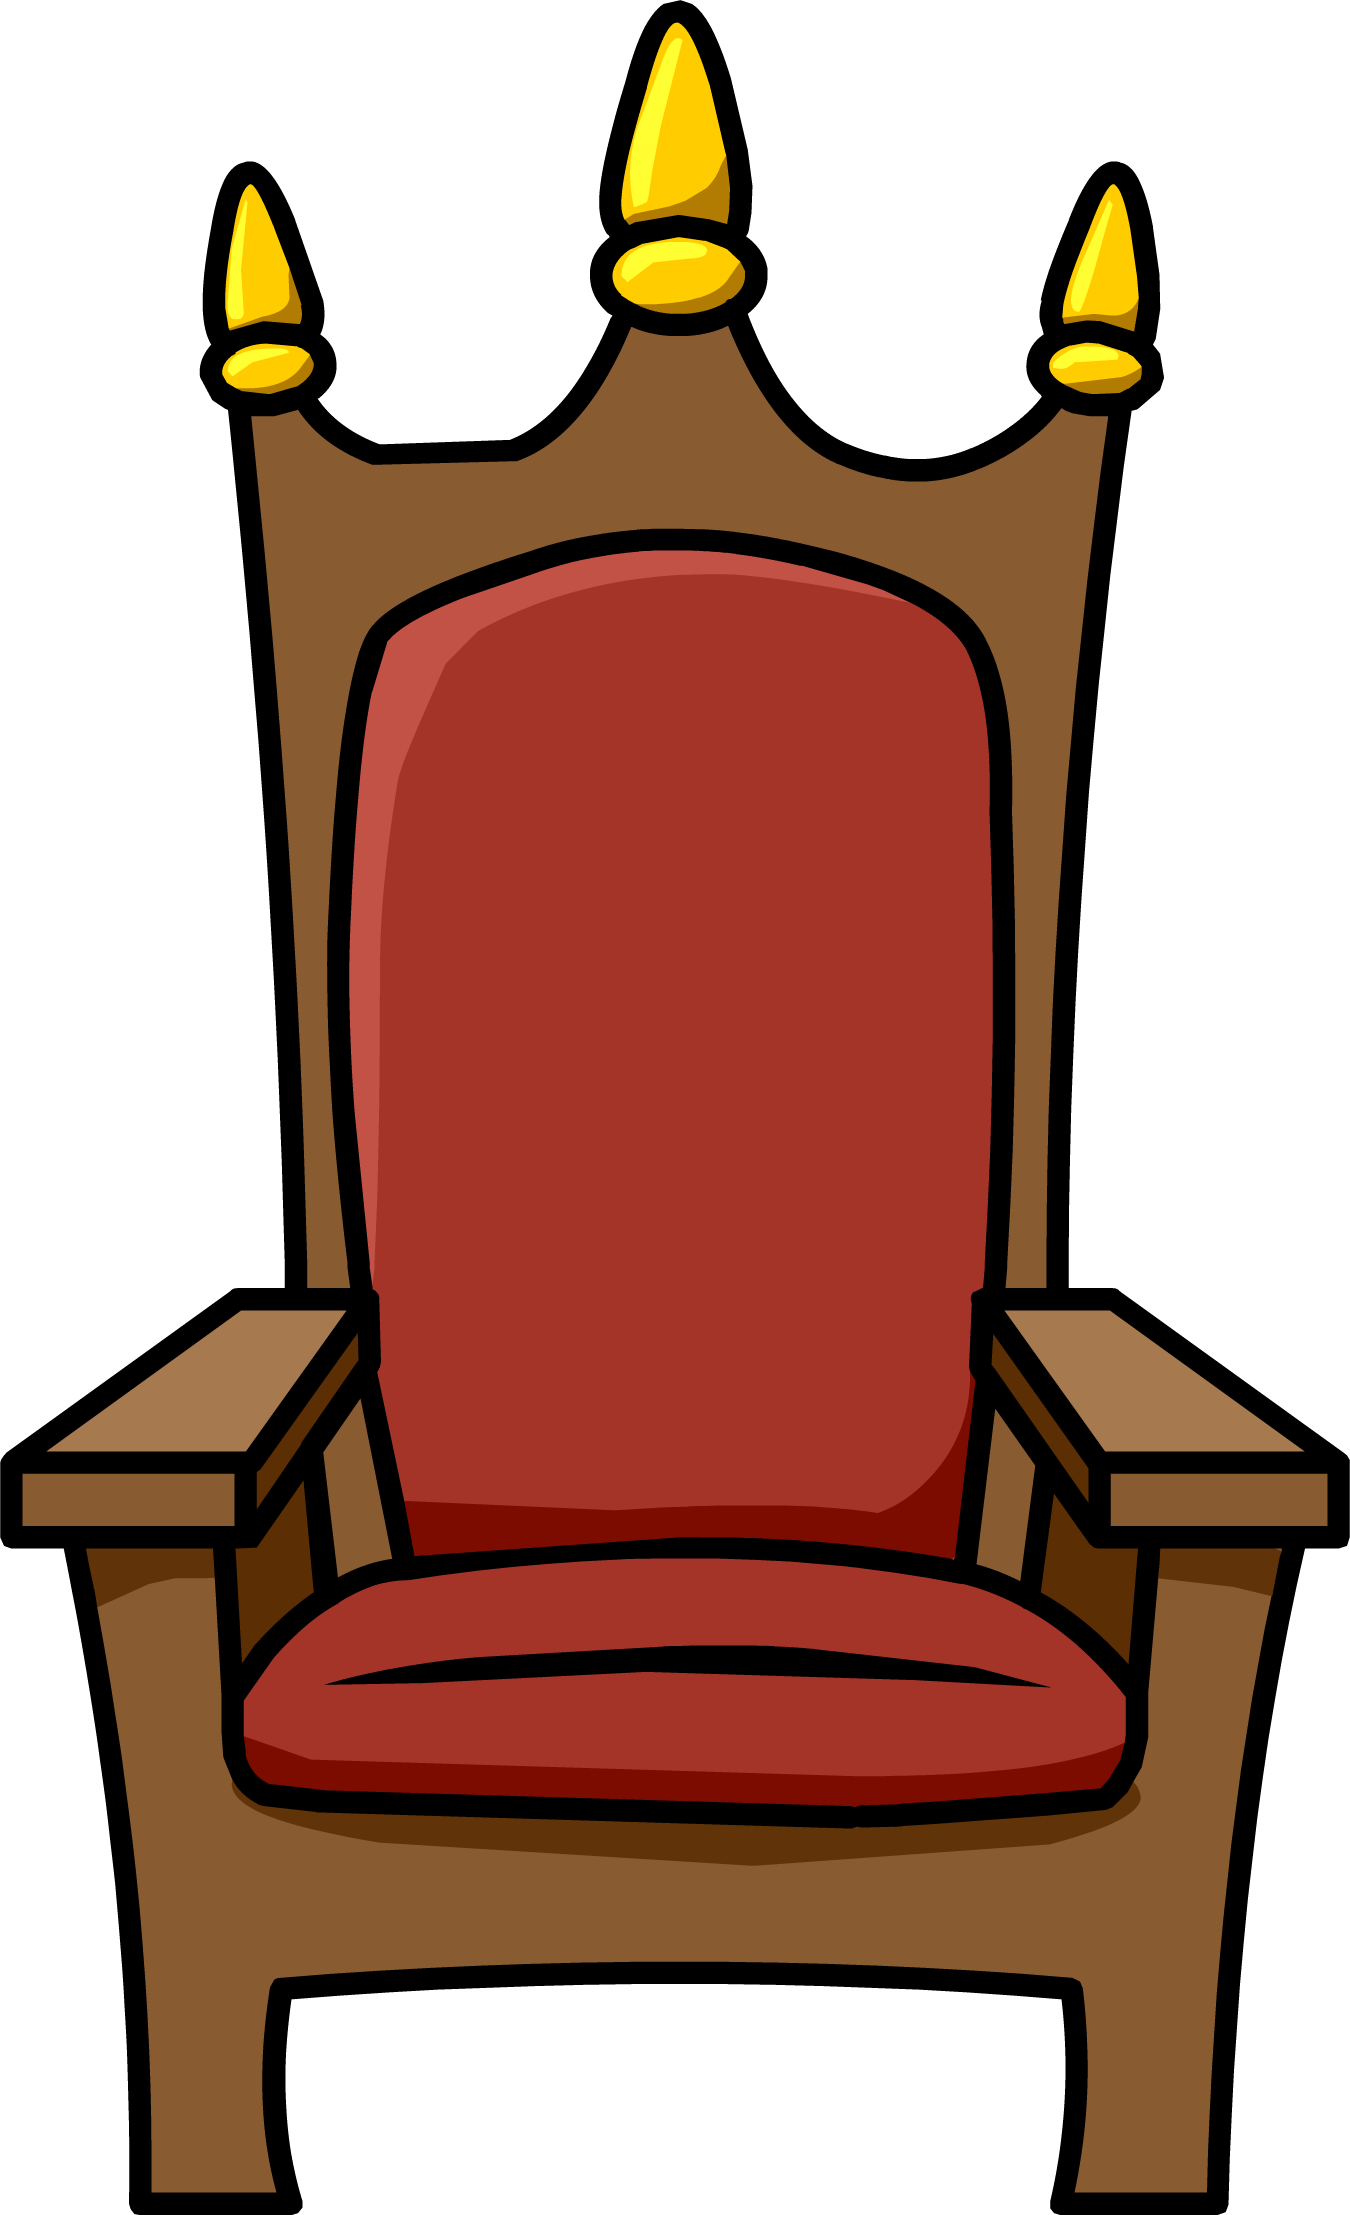 Couch clipart royal. Pin by tim on